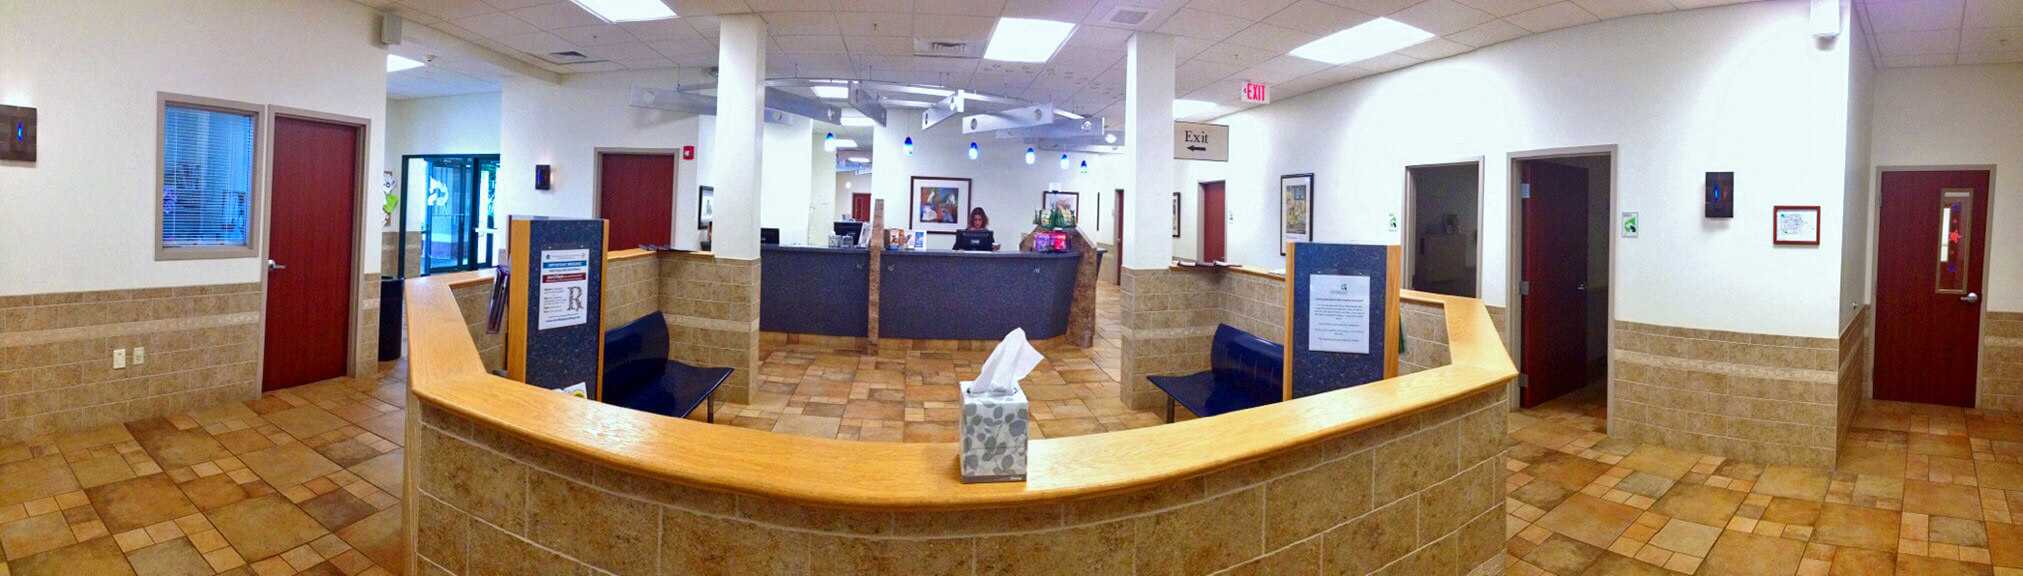 Orchard Park Veterinary Medical Center Reception Area